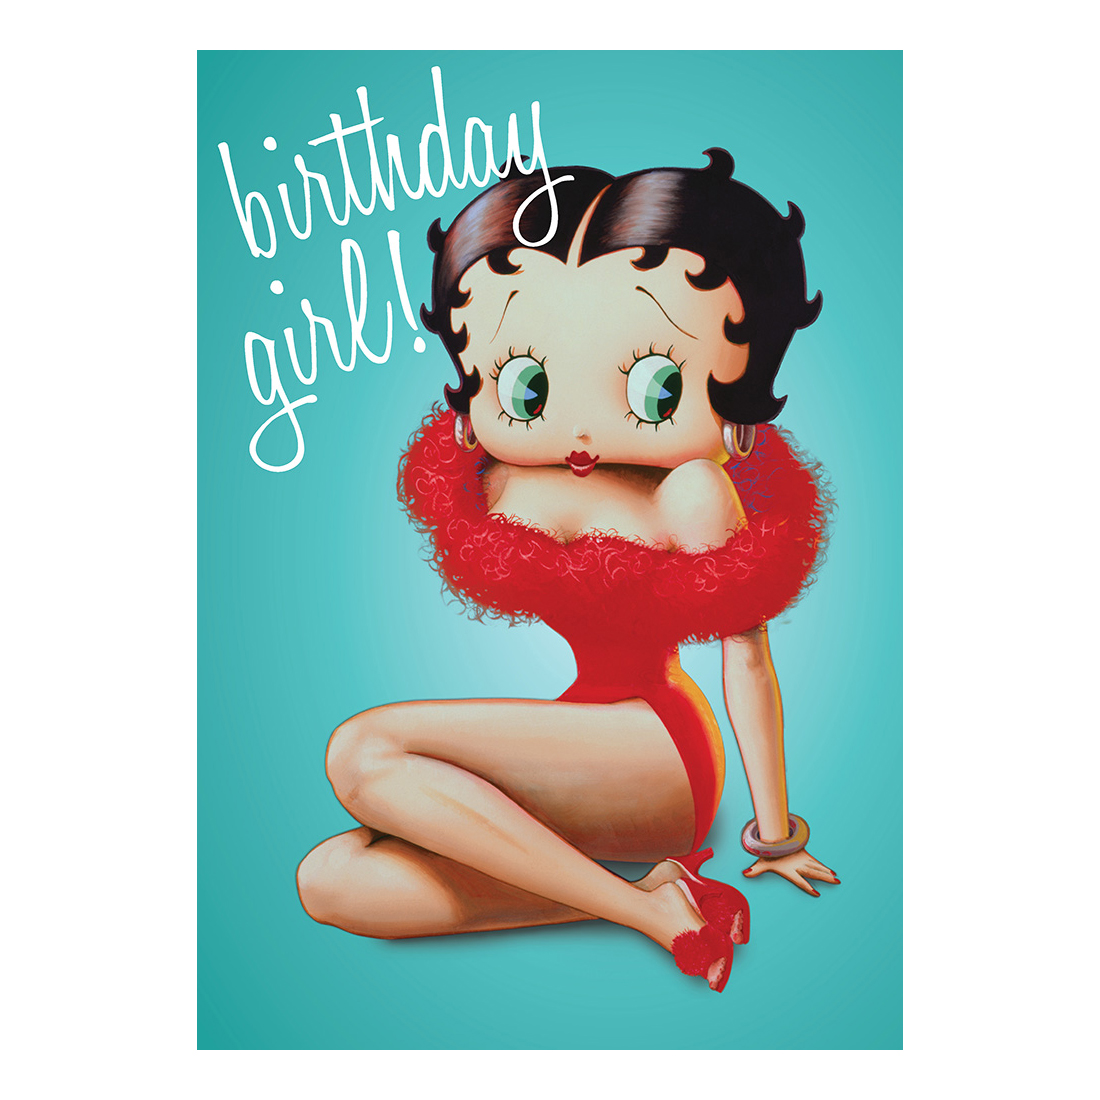 BETTY BOOP BIRTHDAY GIRL GREETING CARD GIFT BLANK RETRO VINTAGE CARTOON HER